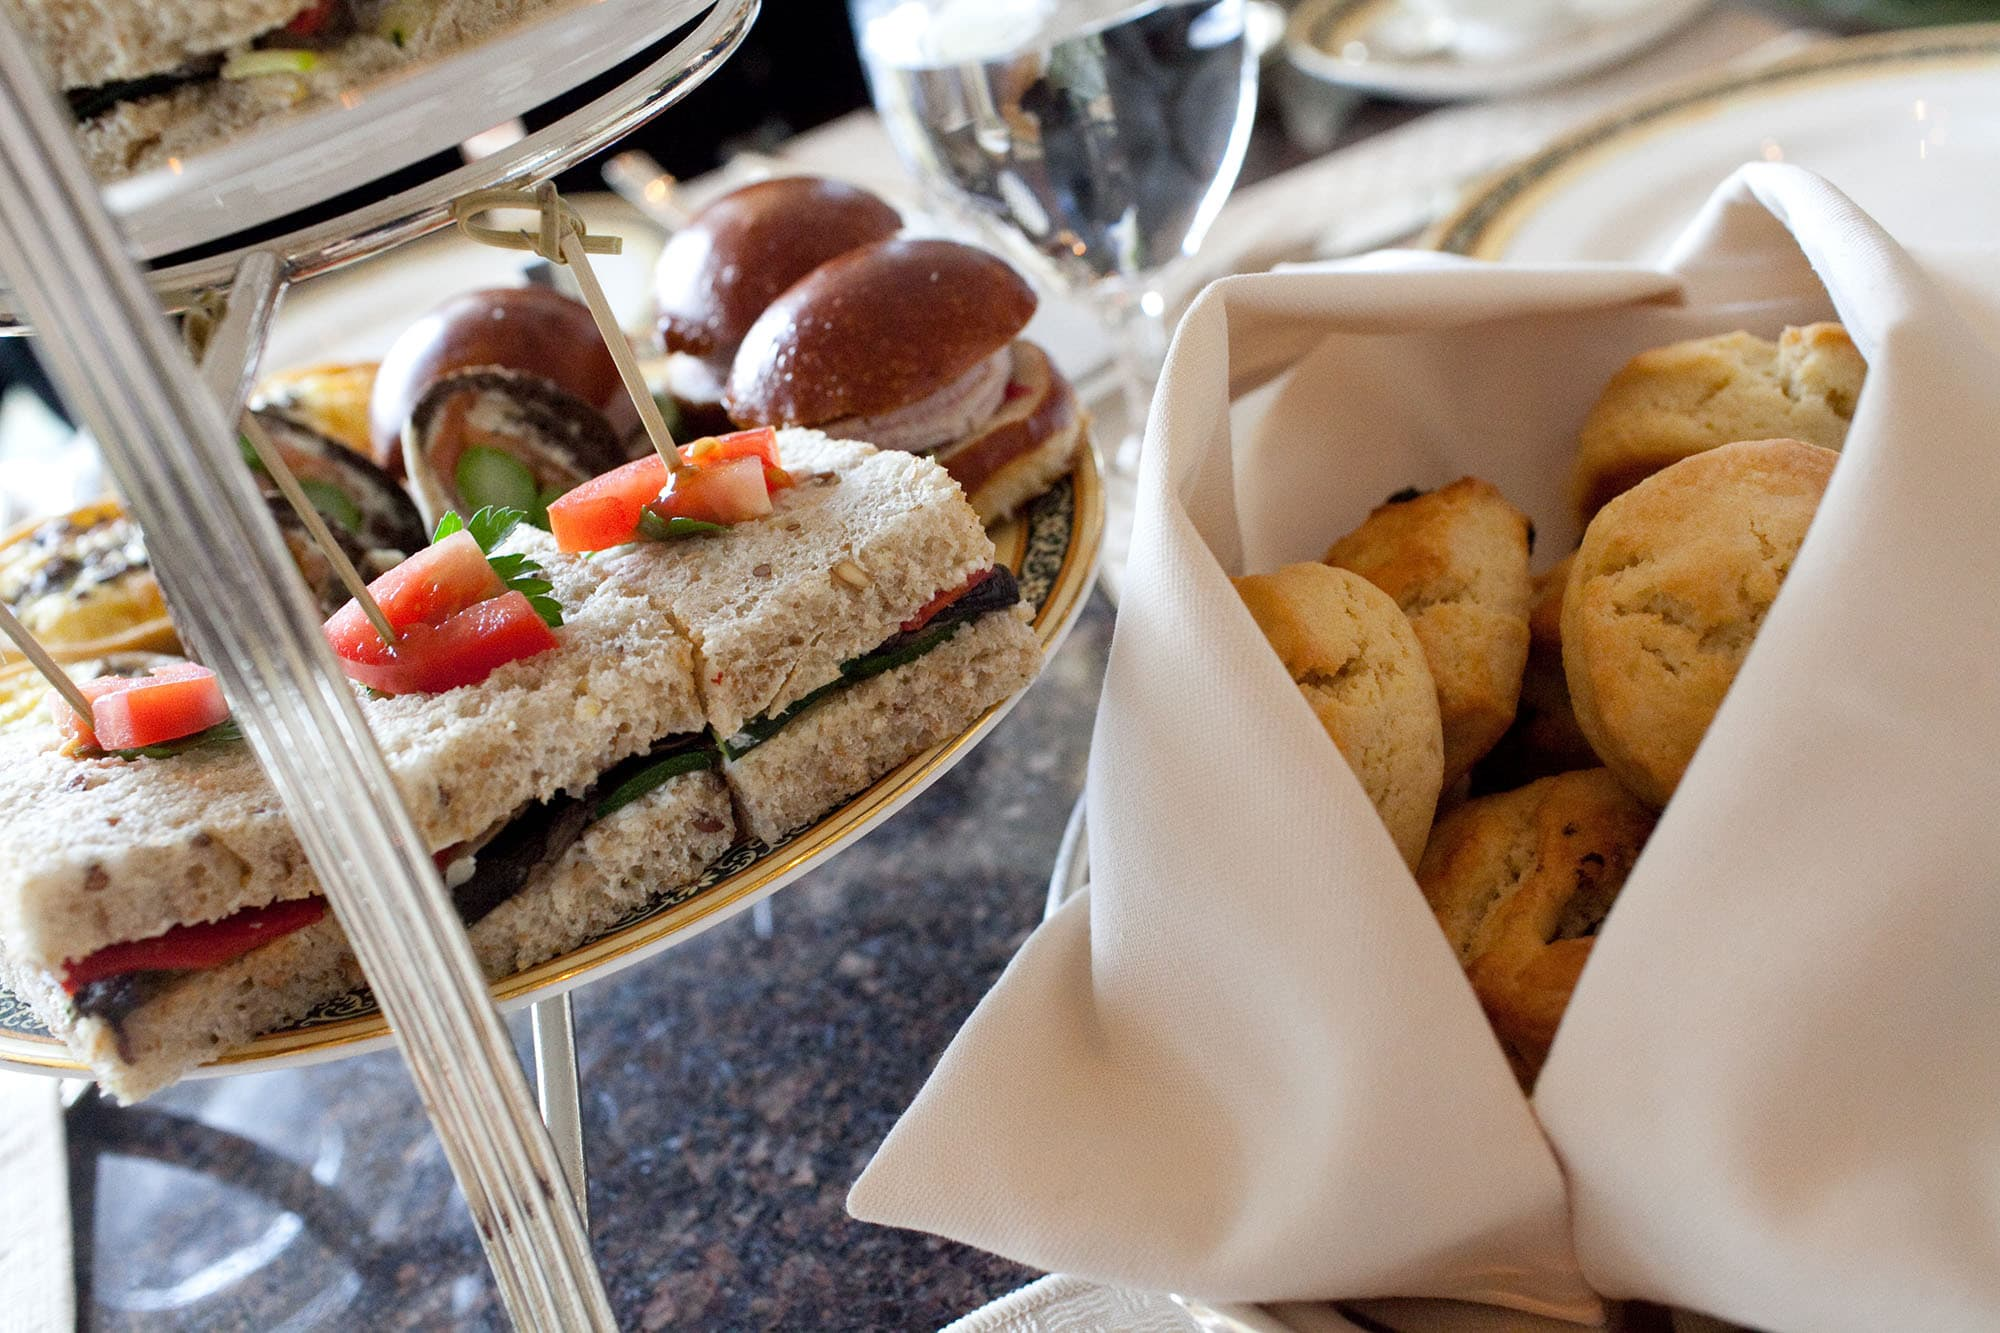 Tea sandwiches and scones at the Lobby at The Peninsula in Chicago, Illinois.